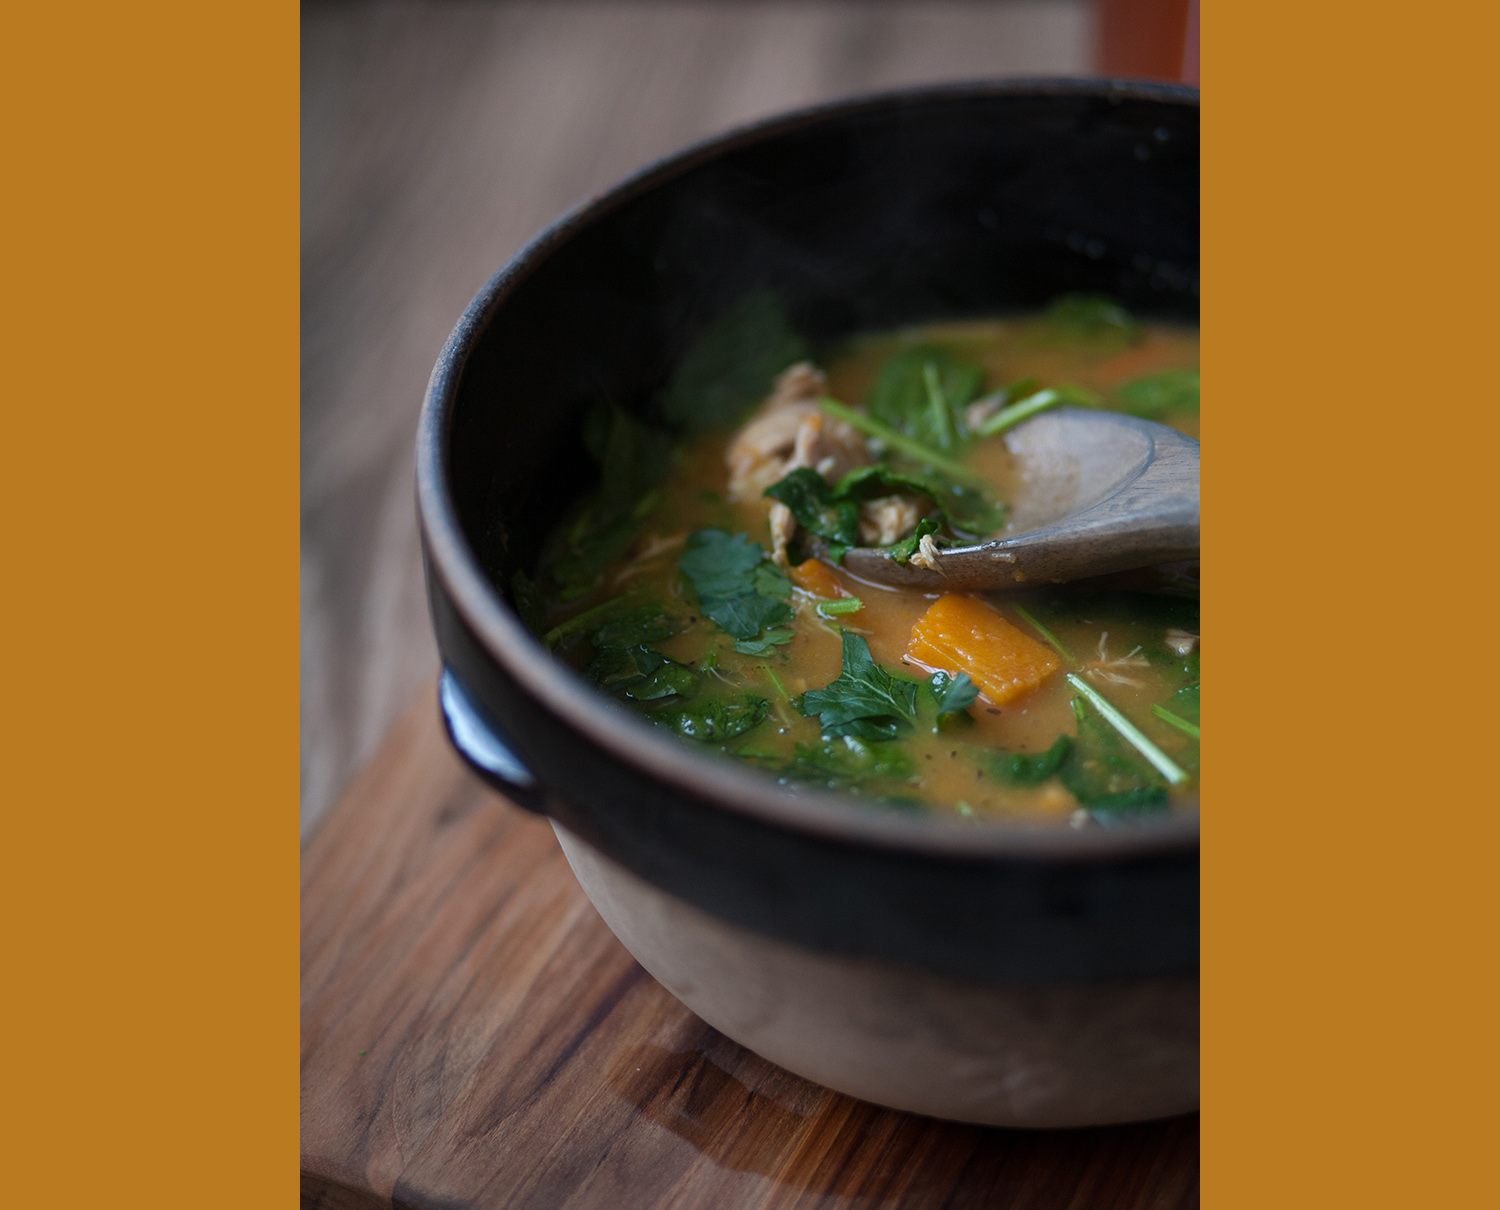 Roast Vegetable and Chicken Soup, curated by dena